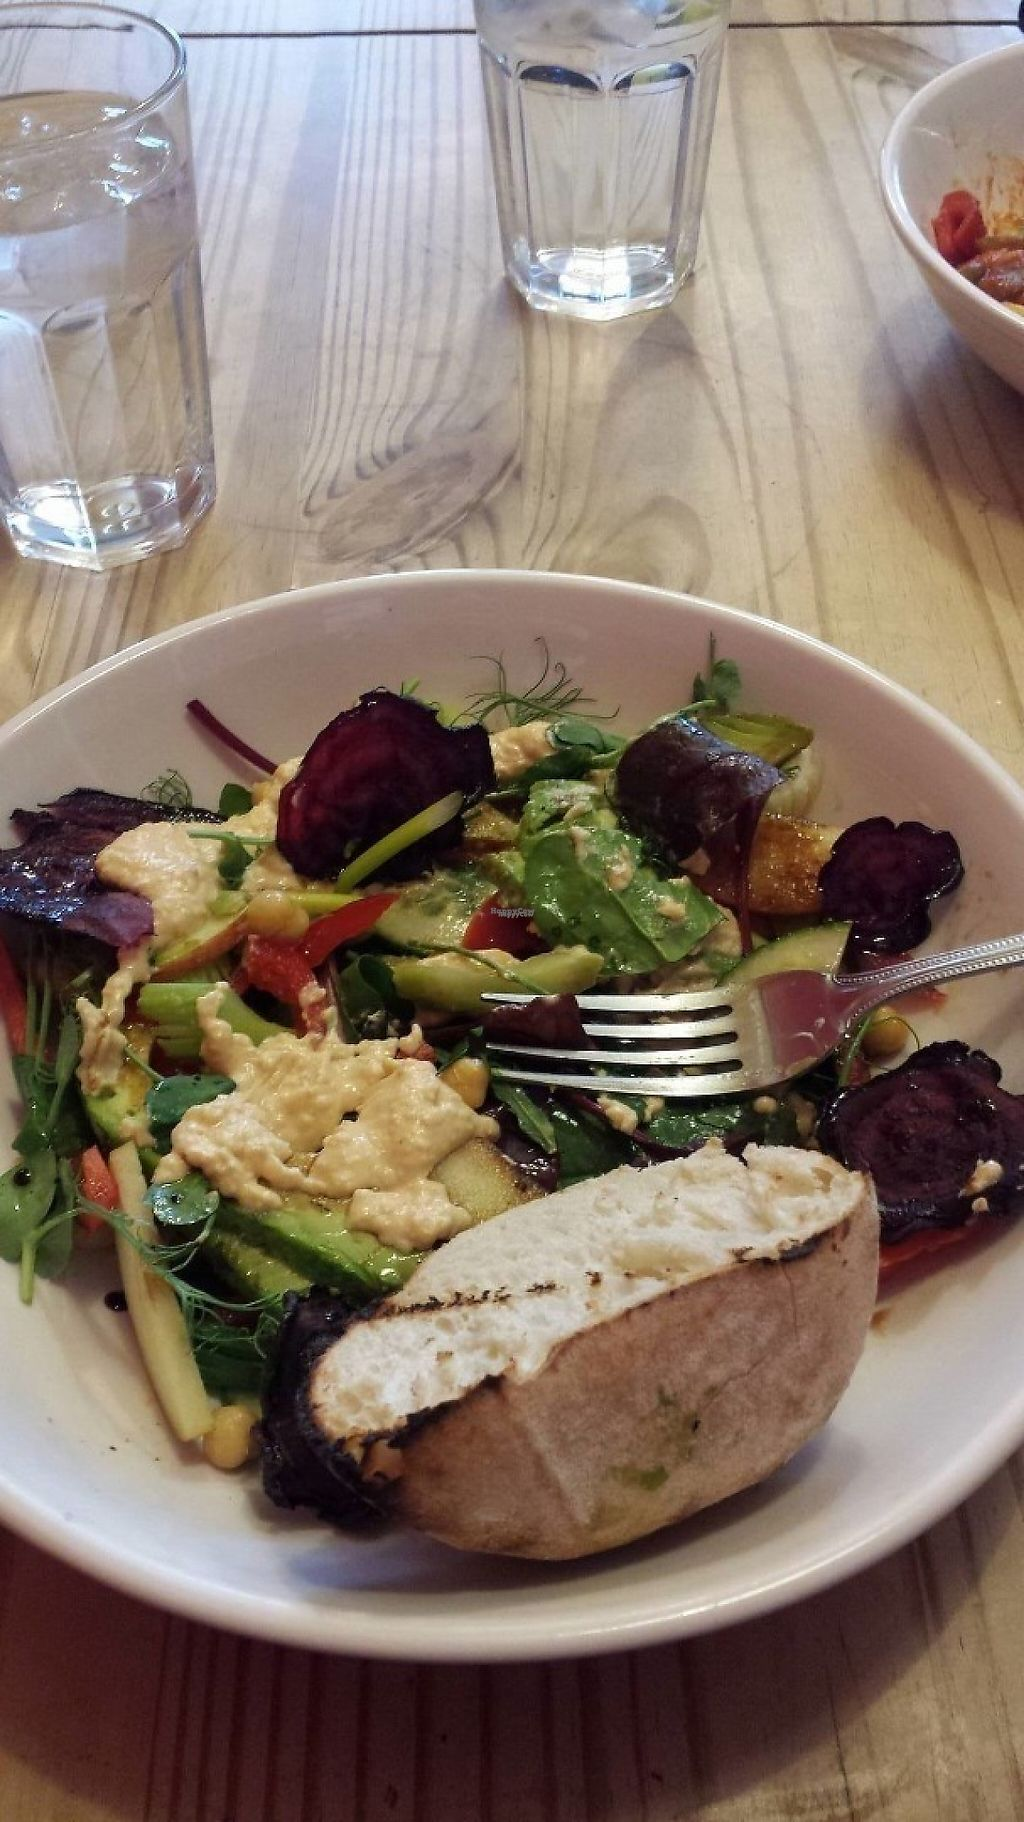 """Photo of The Beached Lamb Cafe  by <a href=""""/members/profile/HannahAtkinson"""">HannahAtkinson</a> <br/>Vegan super salad <br/> November 20, 2016  - <a href='/contact/abuse/image/26982/192518'>Report</a>"""